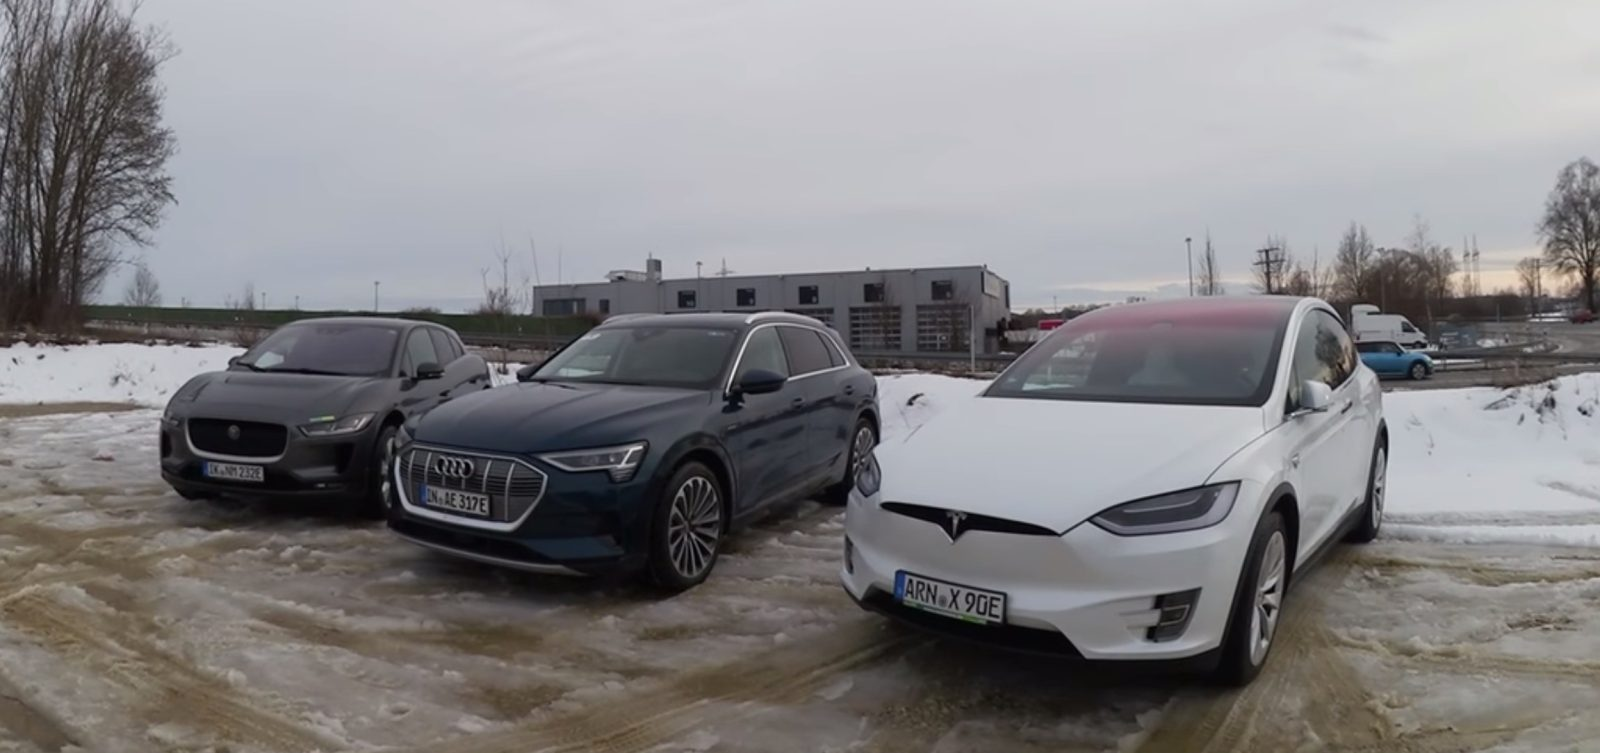 Tesla's incredible efficiency lead is becoming clear with range test against Audi e-tron and Jaguar I-Pace